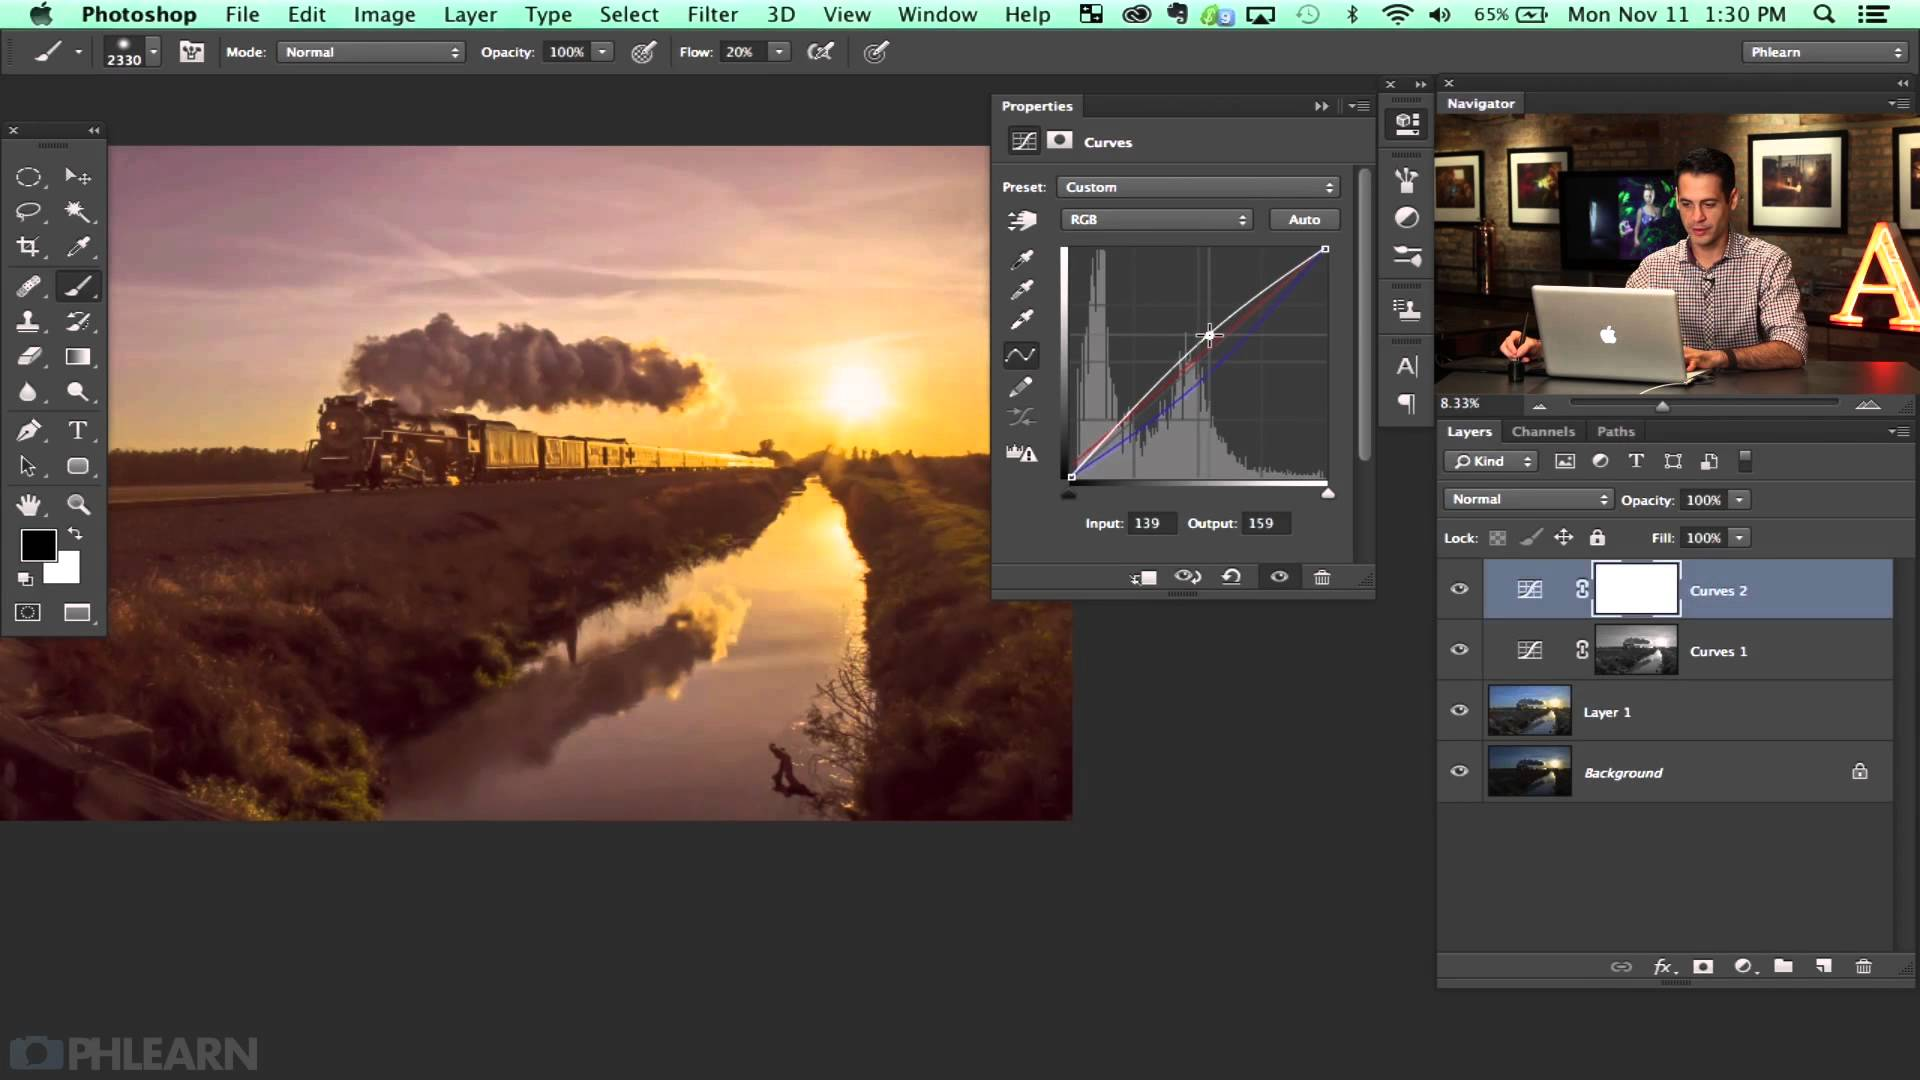 How To Recover Information From Shadows in Photoshop